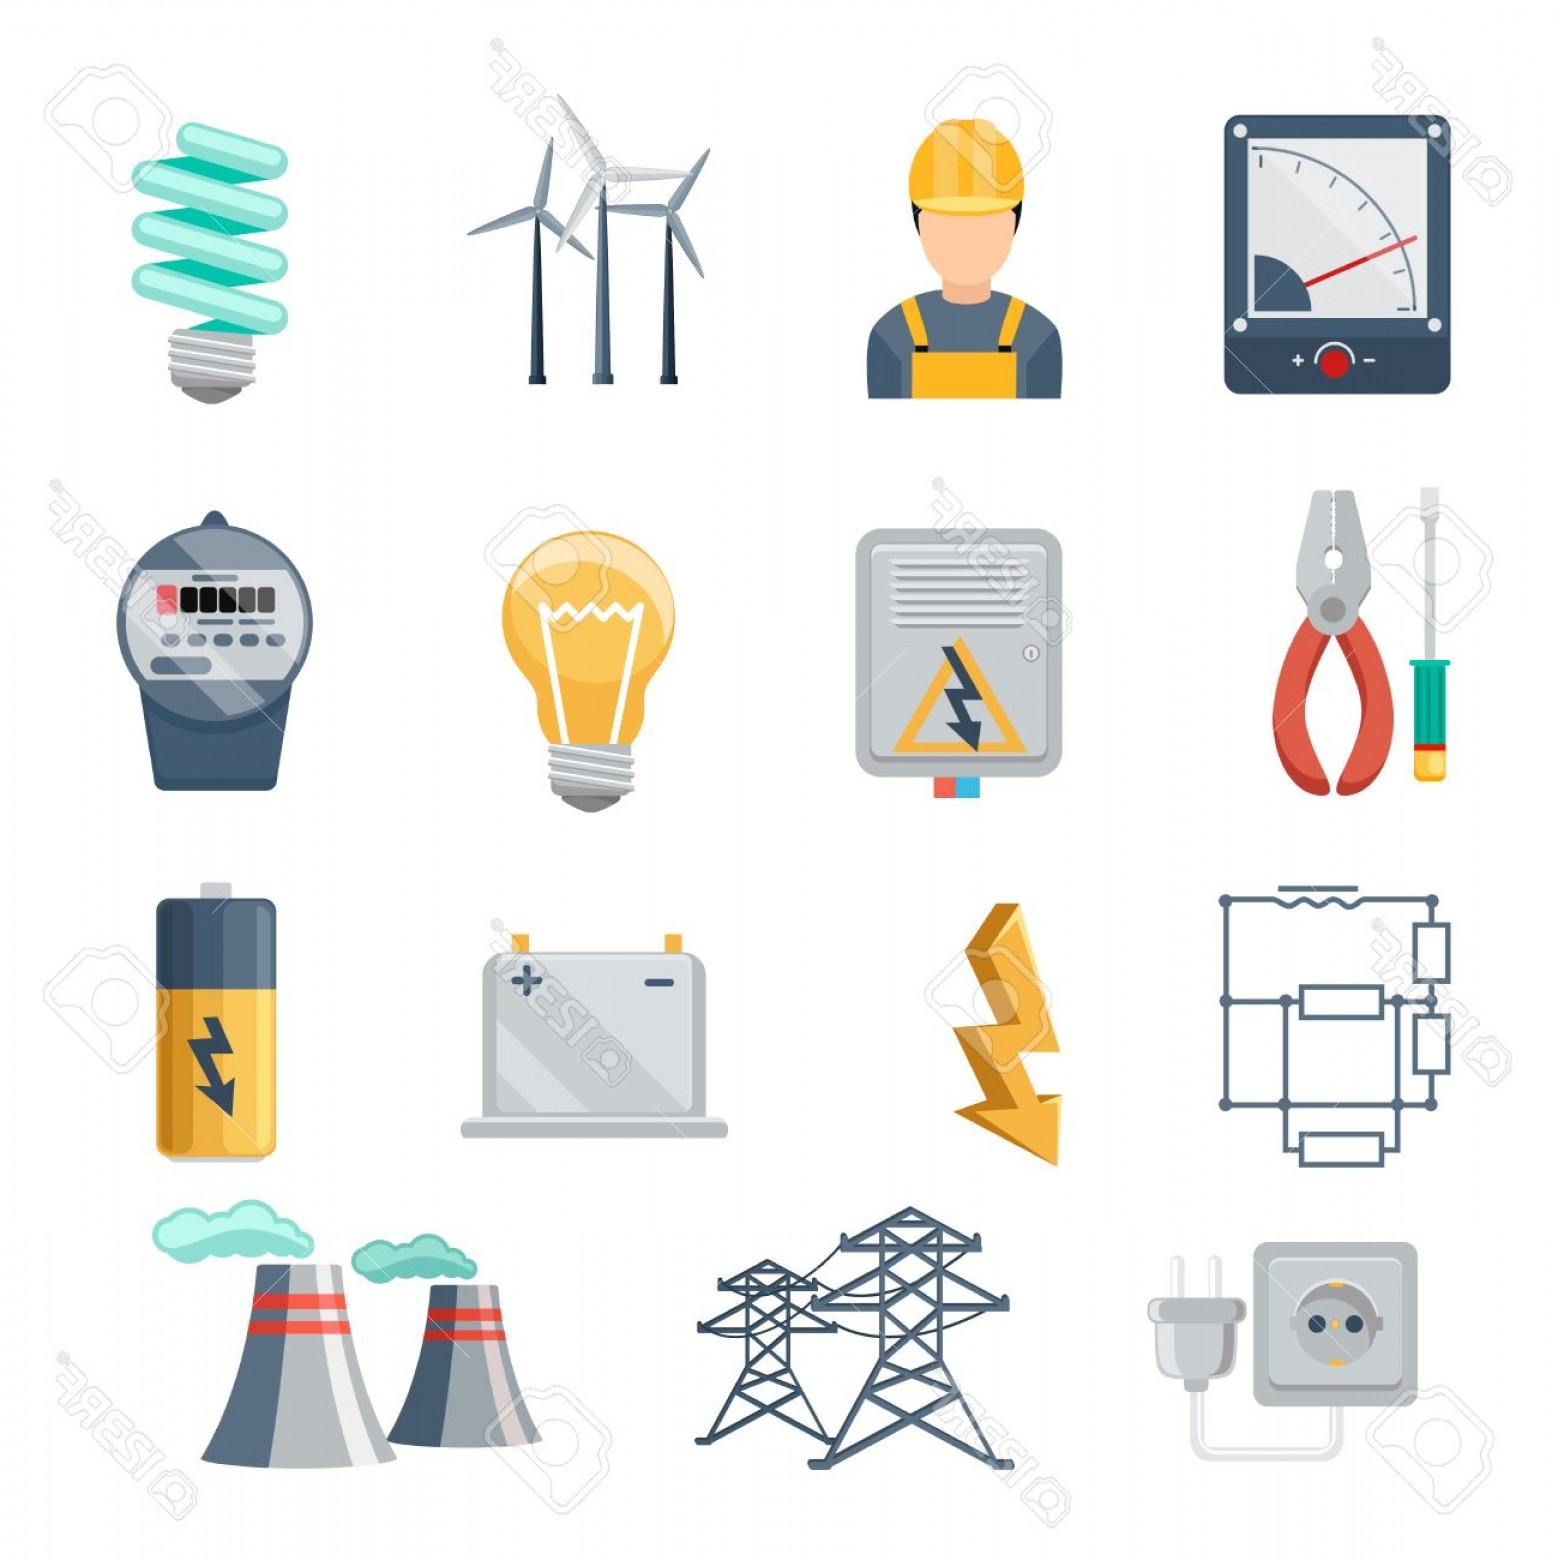 Transformer Vector Diagrams: Photostock Vector Electricity And Power Industry Icons Flat Vector Set Transformer And Socket Plug And Capacity Energy